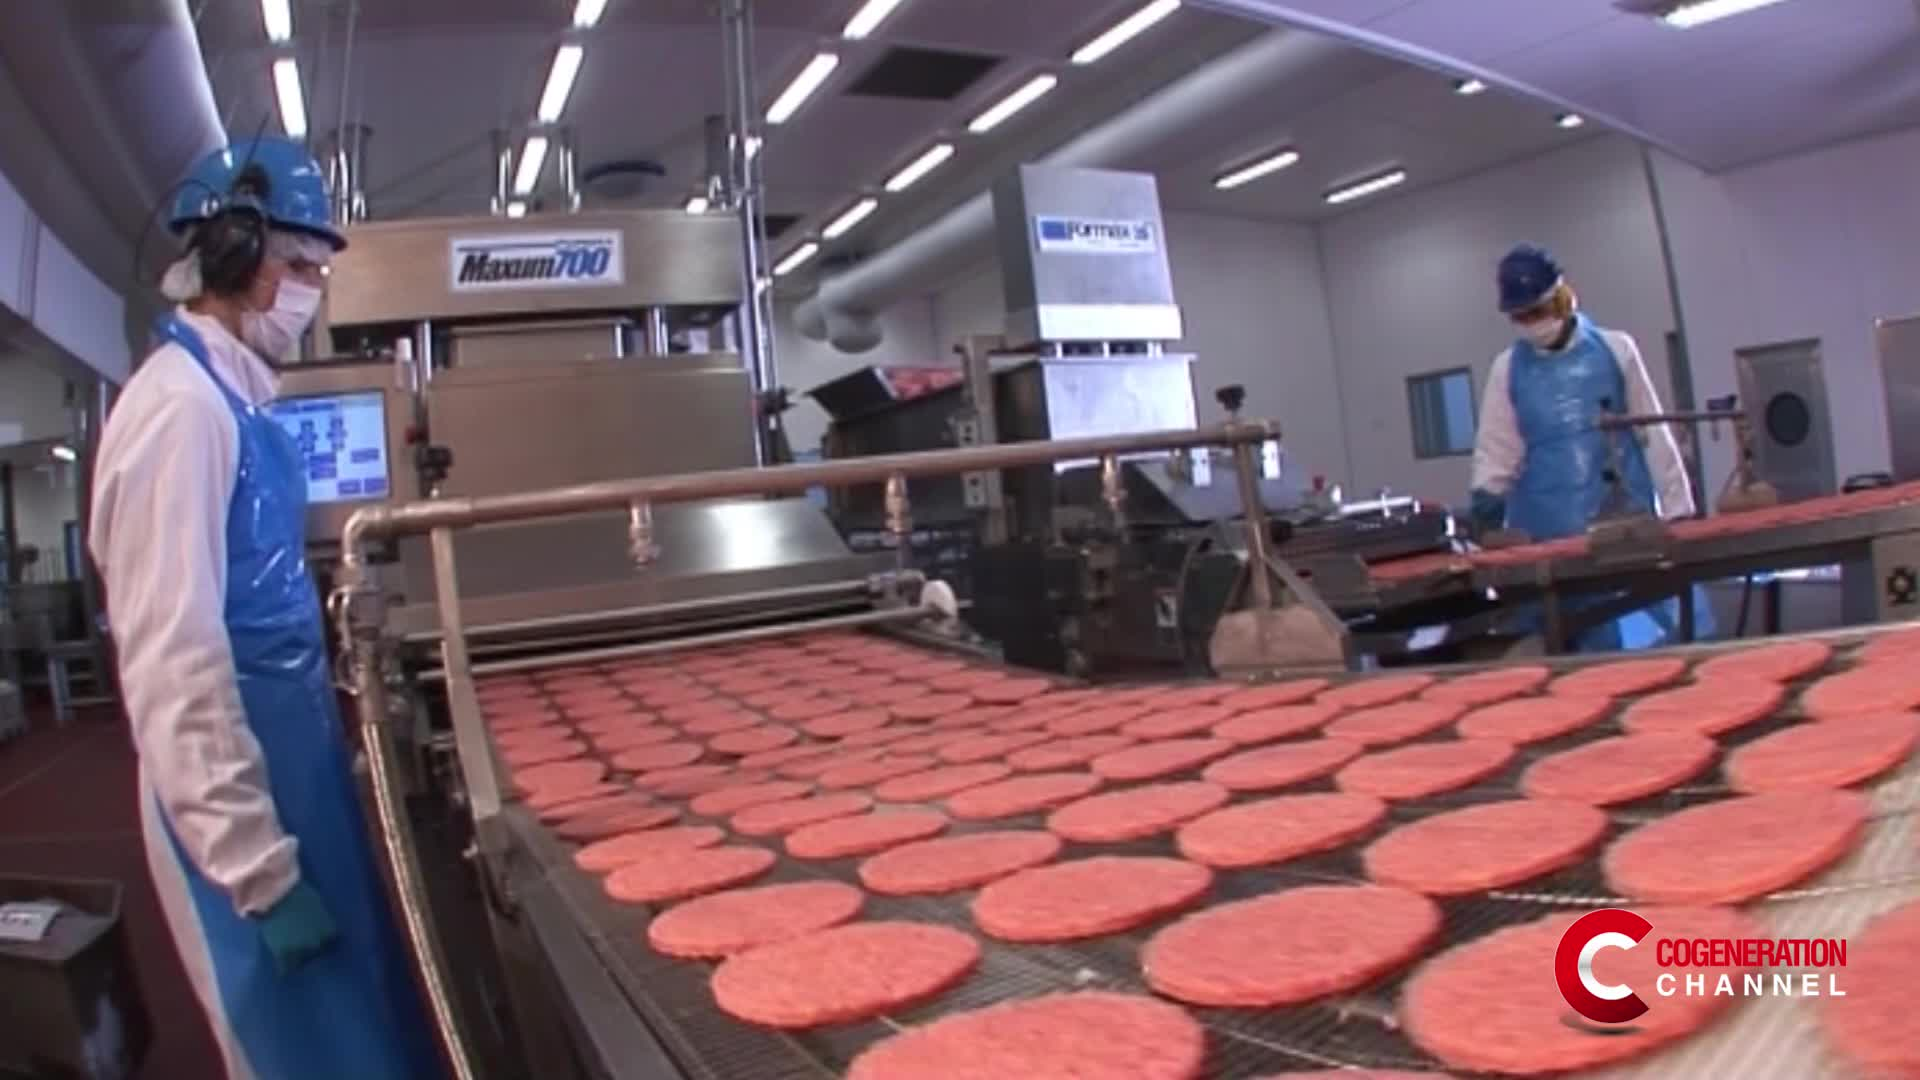 Cogeneration applied to the meat industry: the new entrepreneurial vision of Inalca